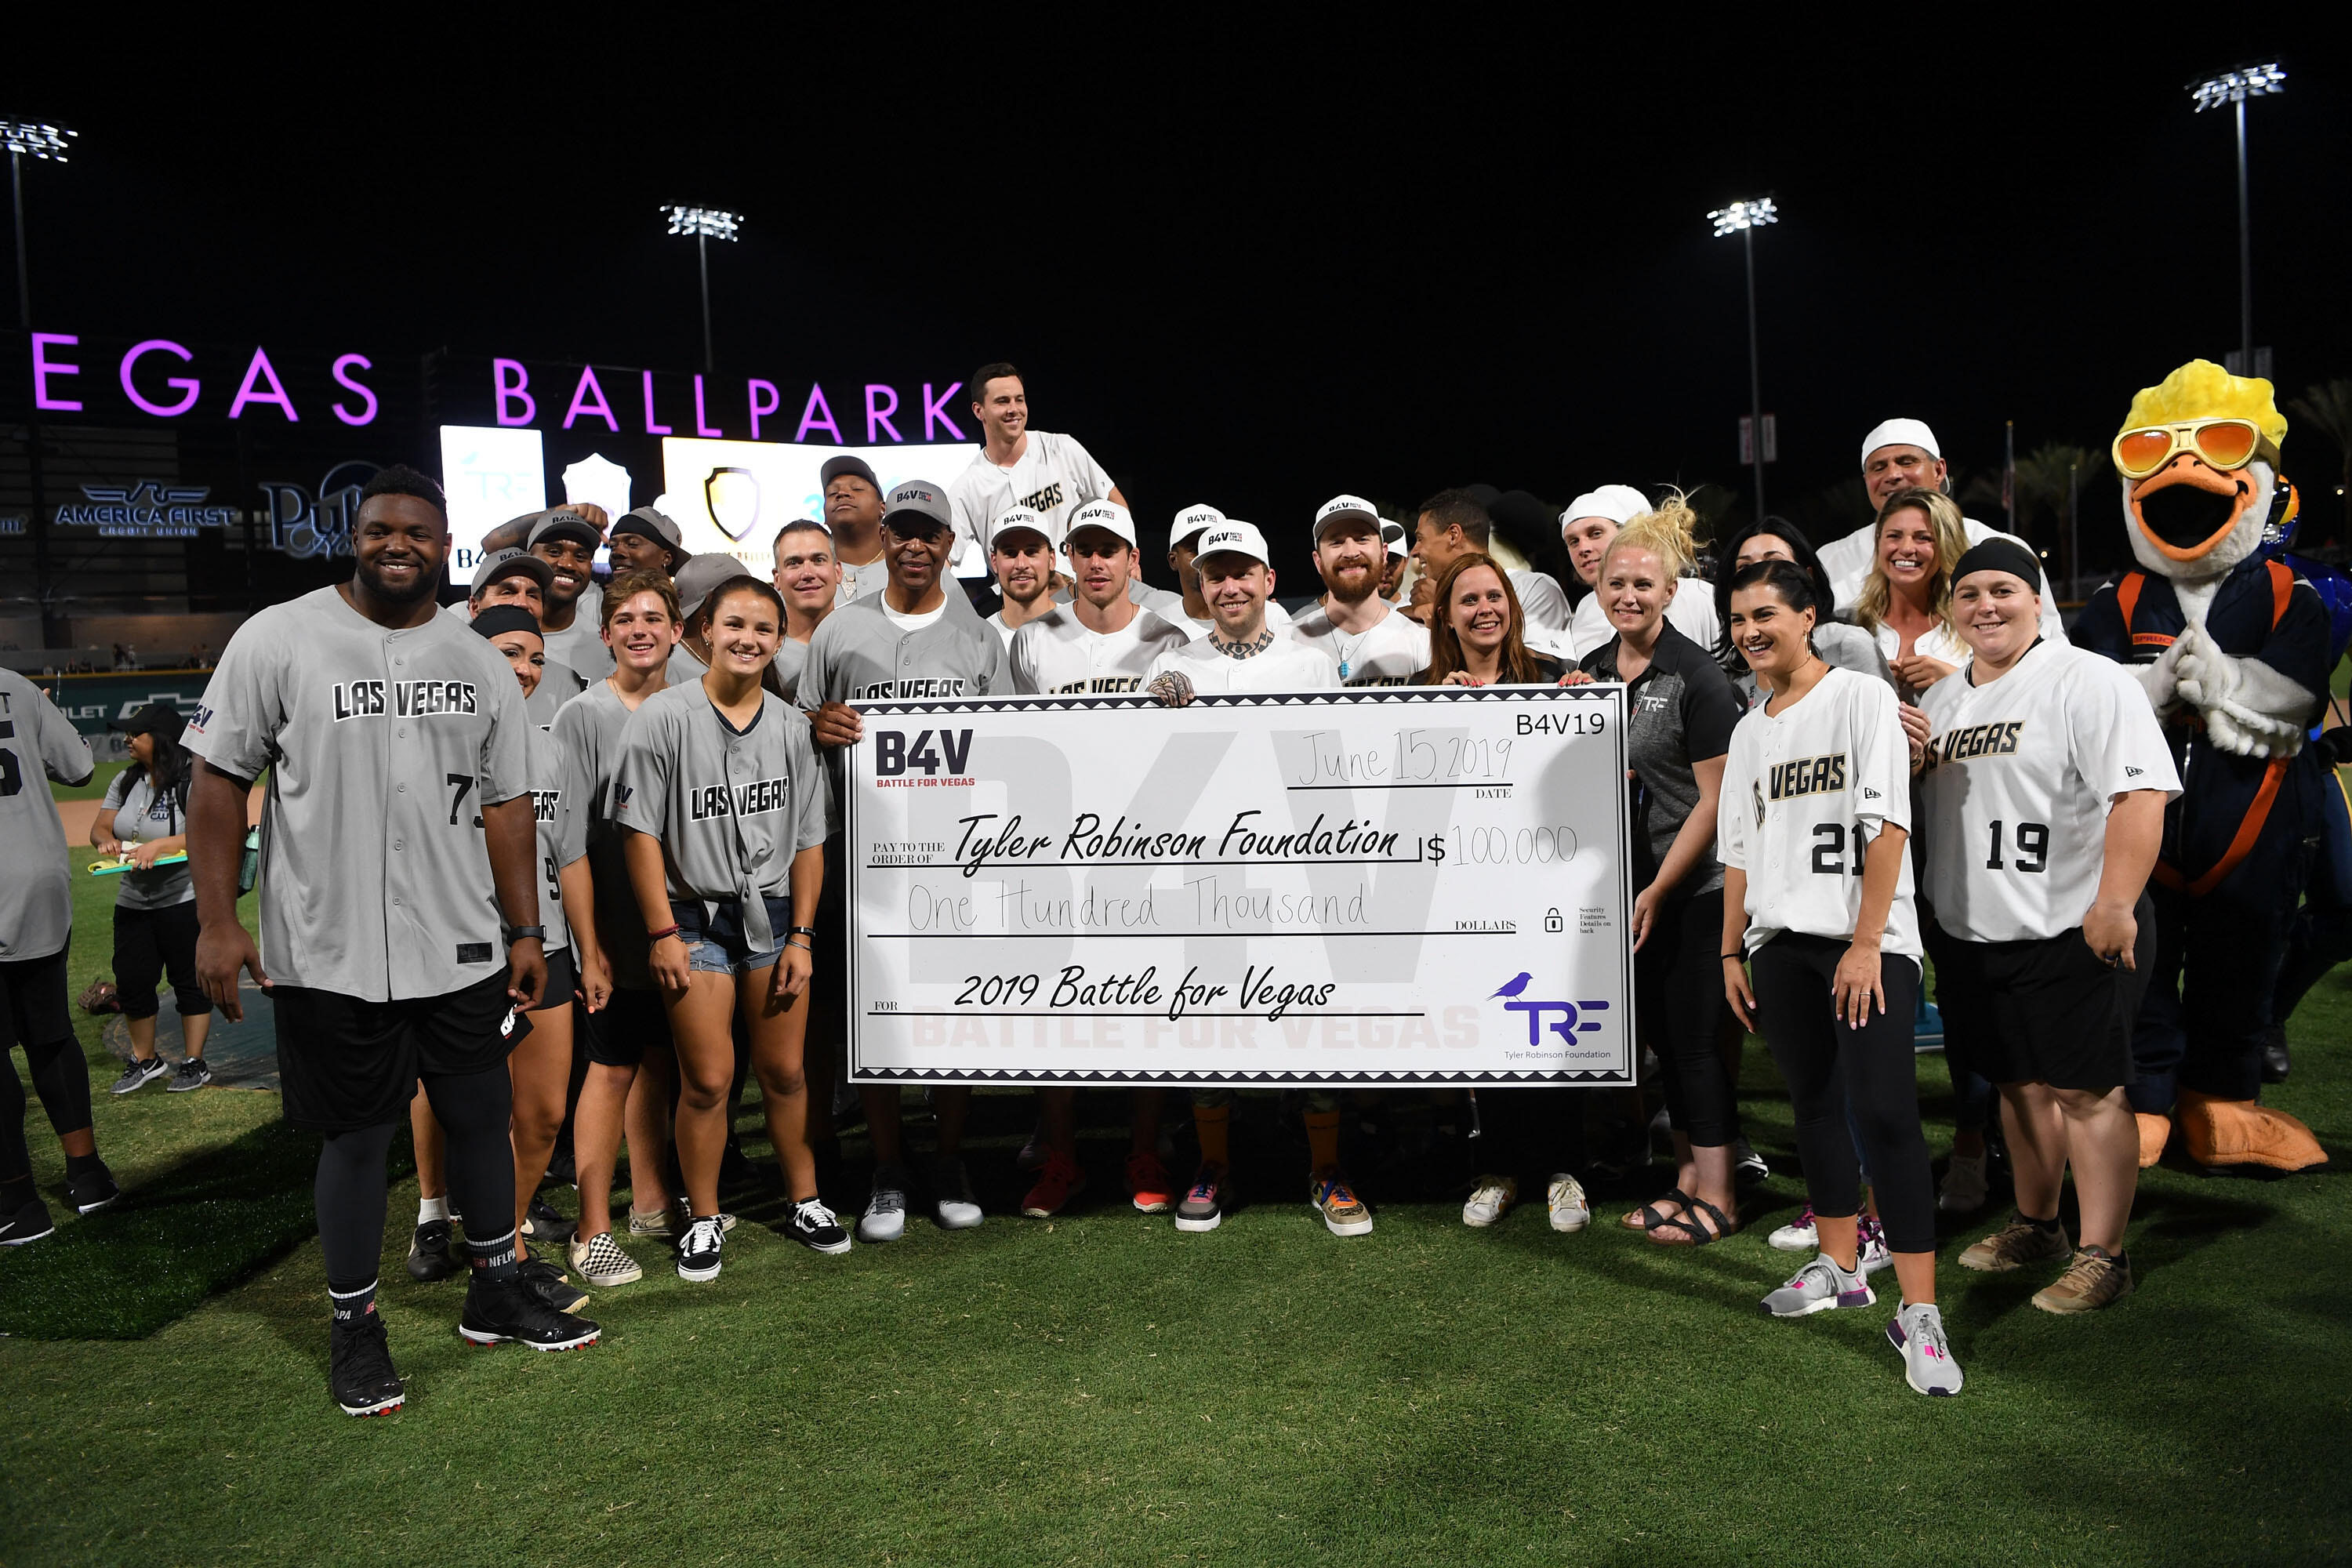 PHOTOS: Battle For Vegas Charity Softball Game Hosted By Reilly Smith